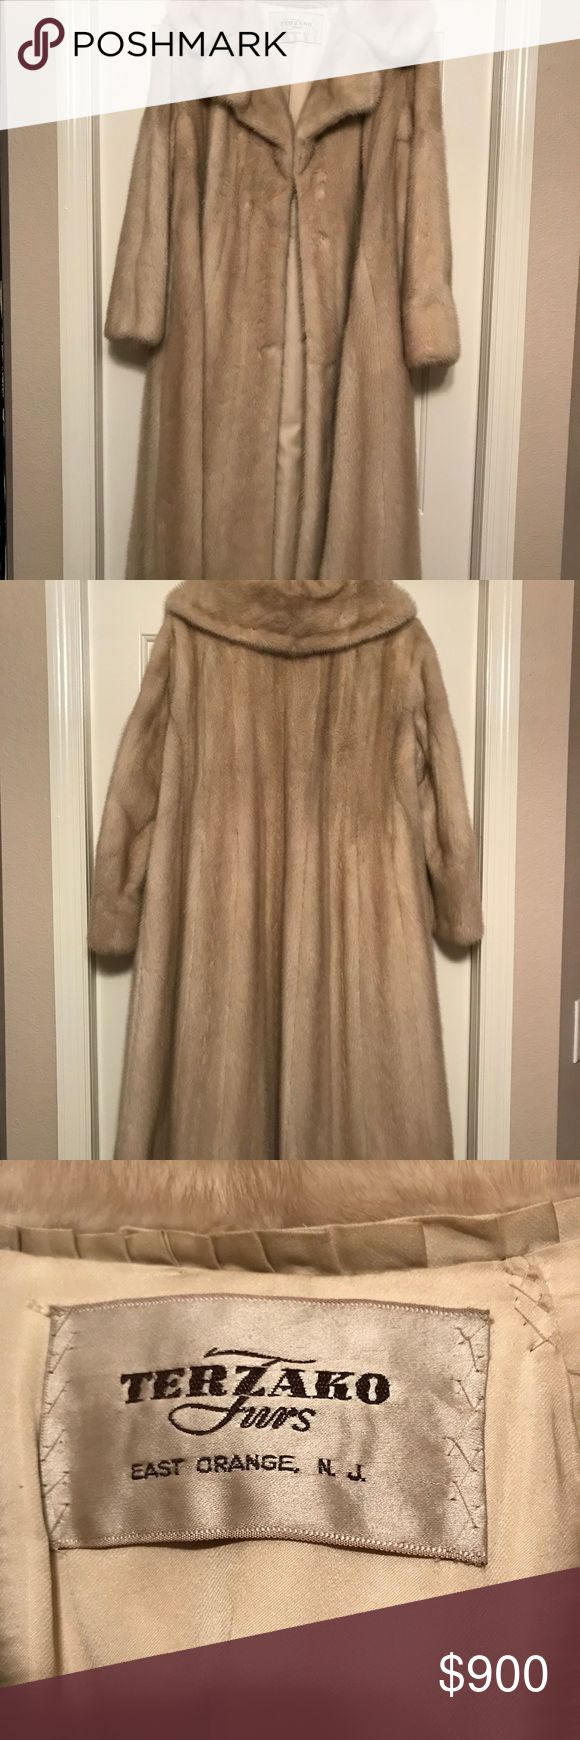 Mink Coat White creme/ beige full  (long) length Mink Coat by Terzako Furs East Orange, N.J..   notched collar cuff slelves slanted outside pockets  and one inside latch hook collar for severe cold. Price includes shipping and insurance. Terzako Jackets & Coats